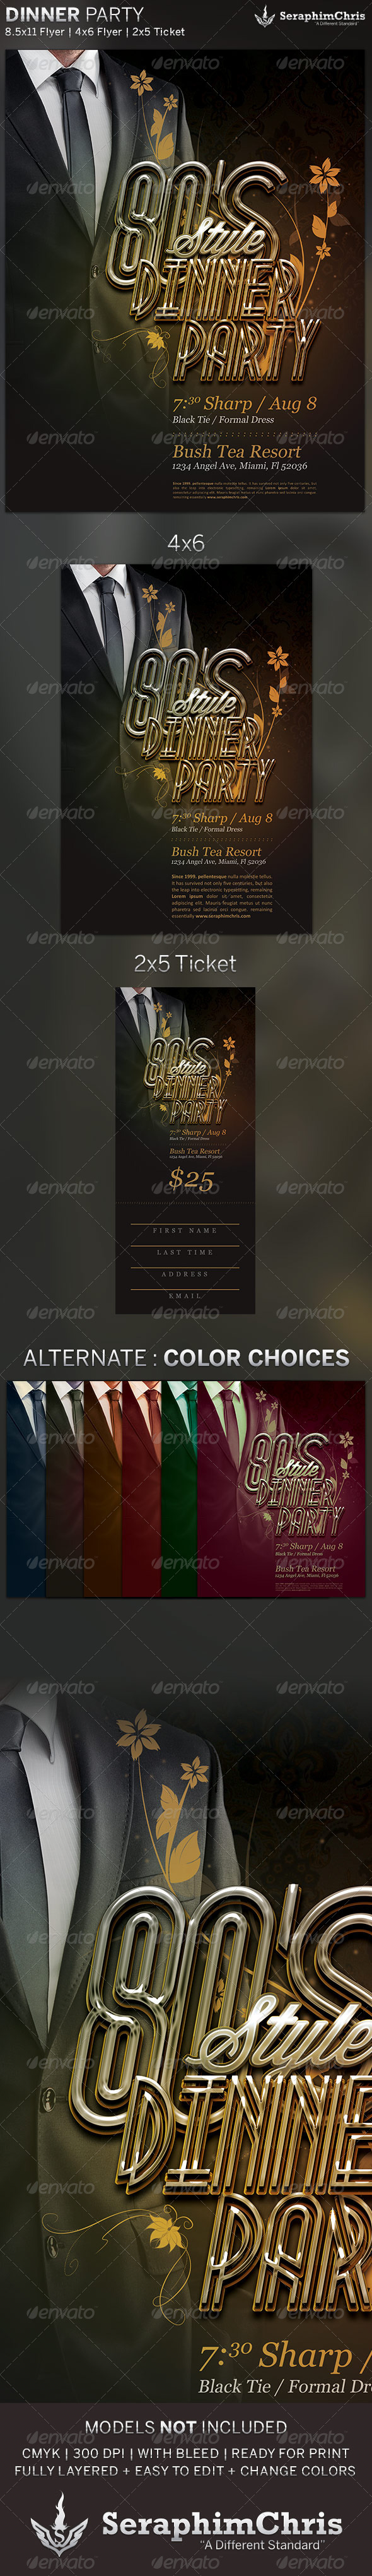 GraphicRiver 80 s Dinner Party Flyer and Ticket Template 5134715